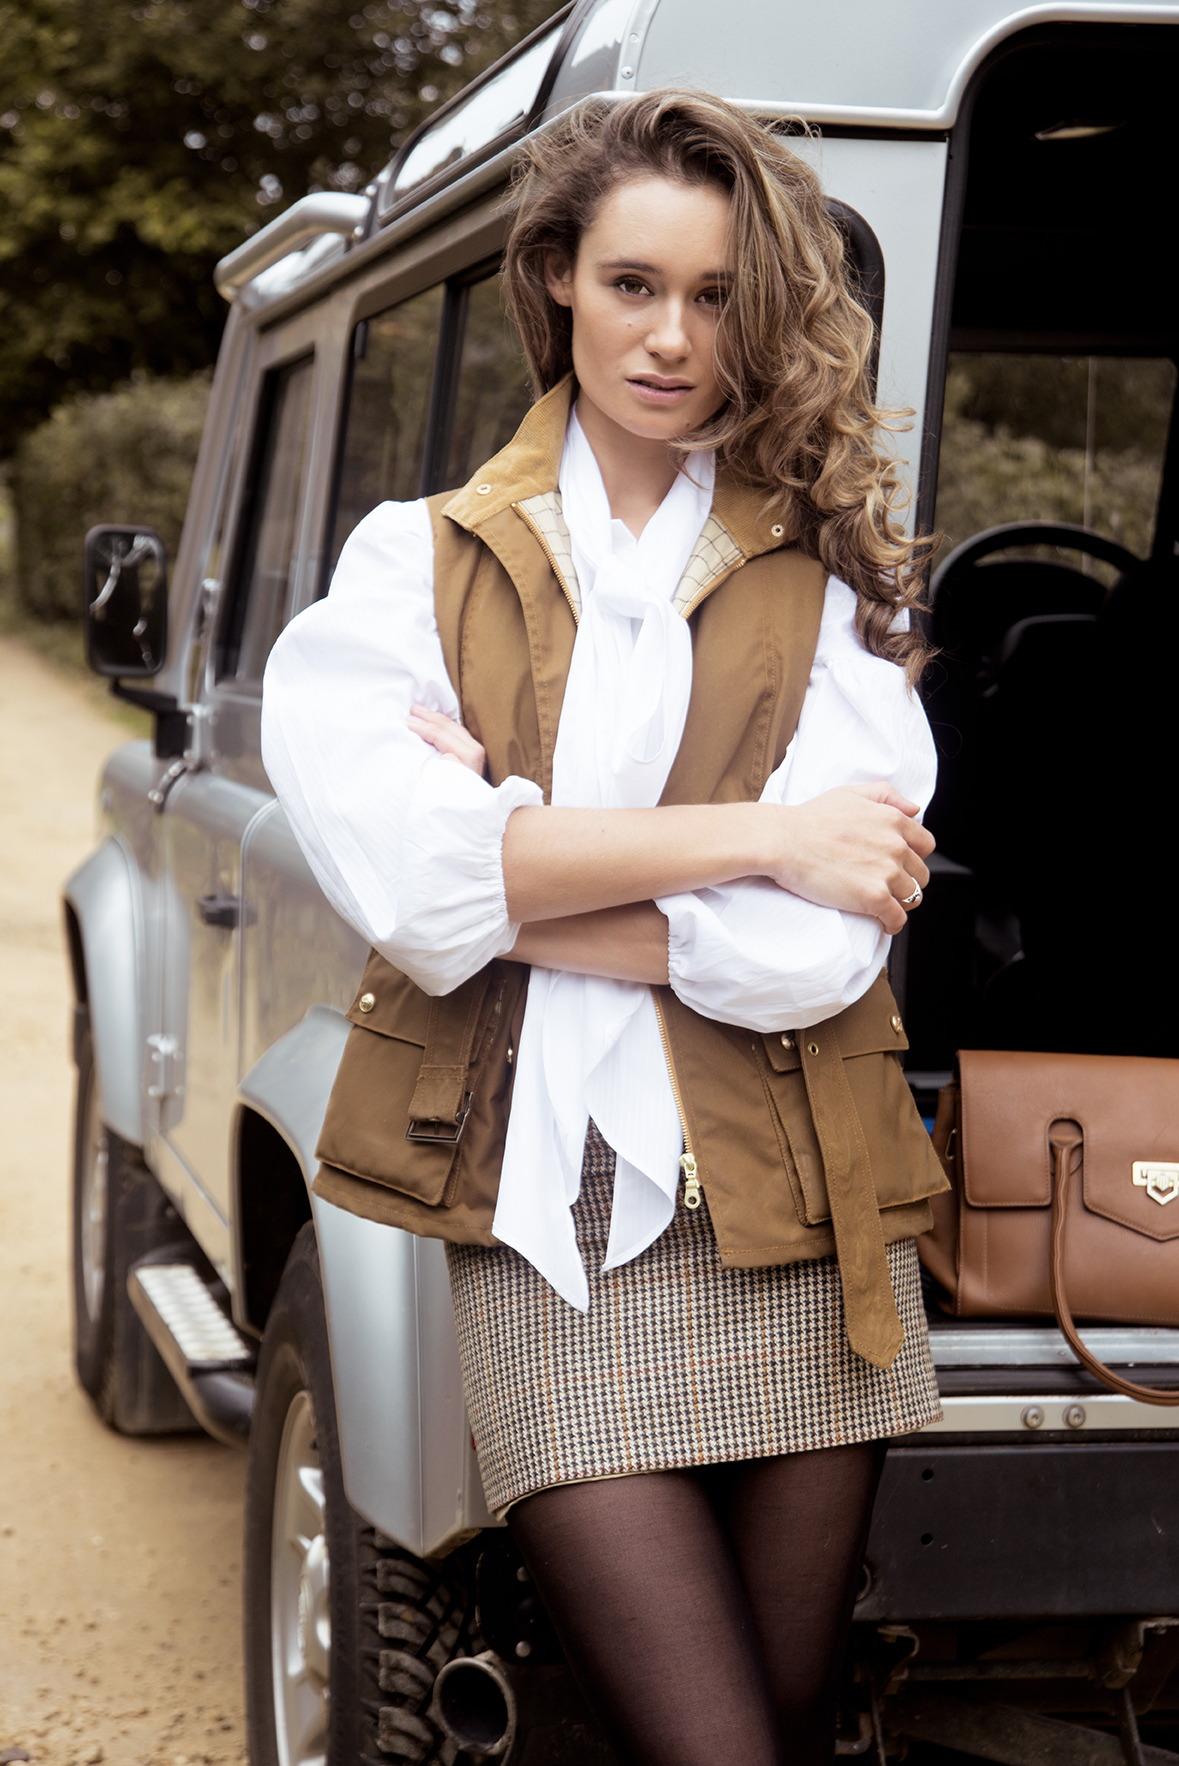 Laura Thyler For Harris Rae Shot by Grace Delnevo Cotswold Fashion Photographer Landrover